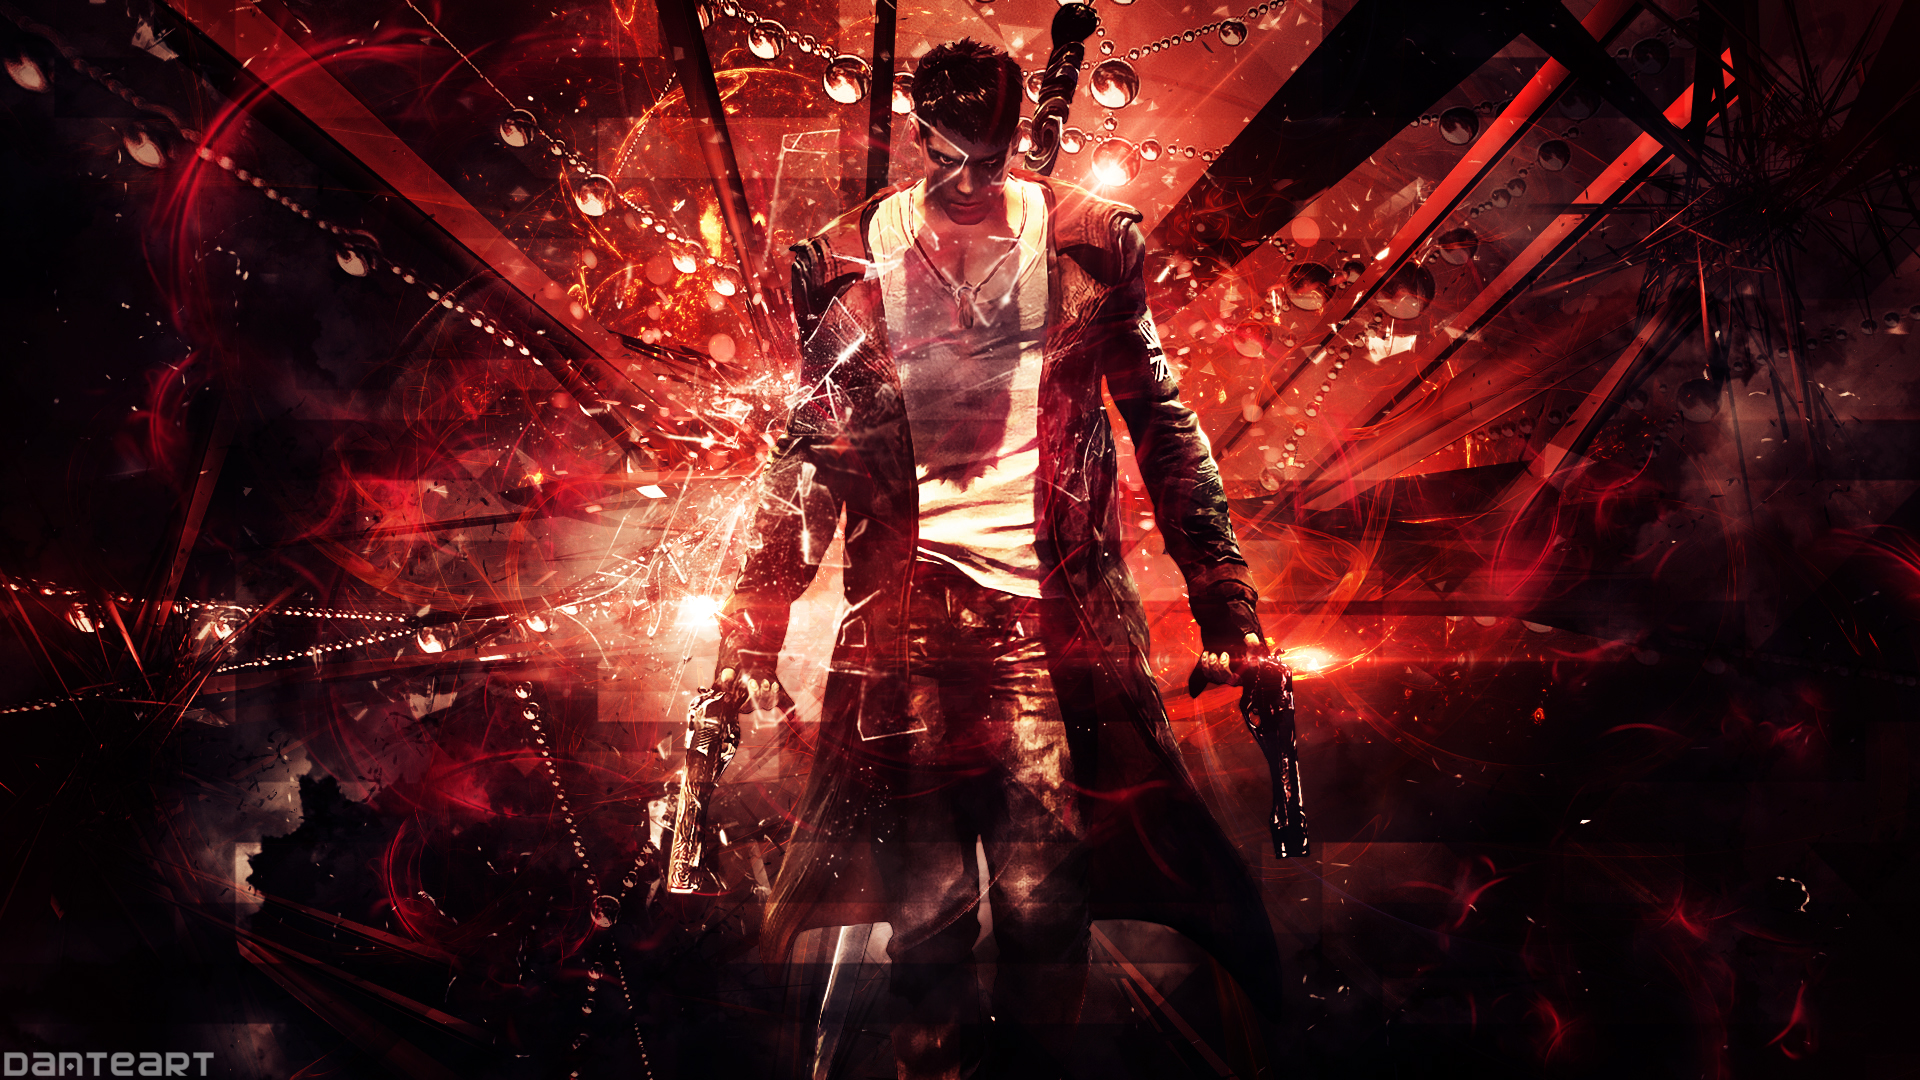 Dmc Devil May Cry Dante Wallpaper By Danteartwallpapers On Deviantart